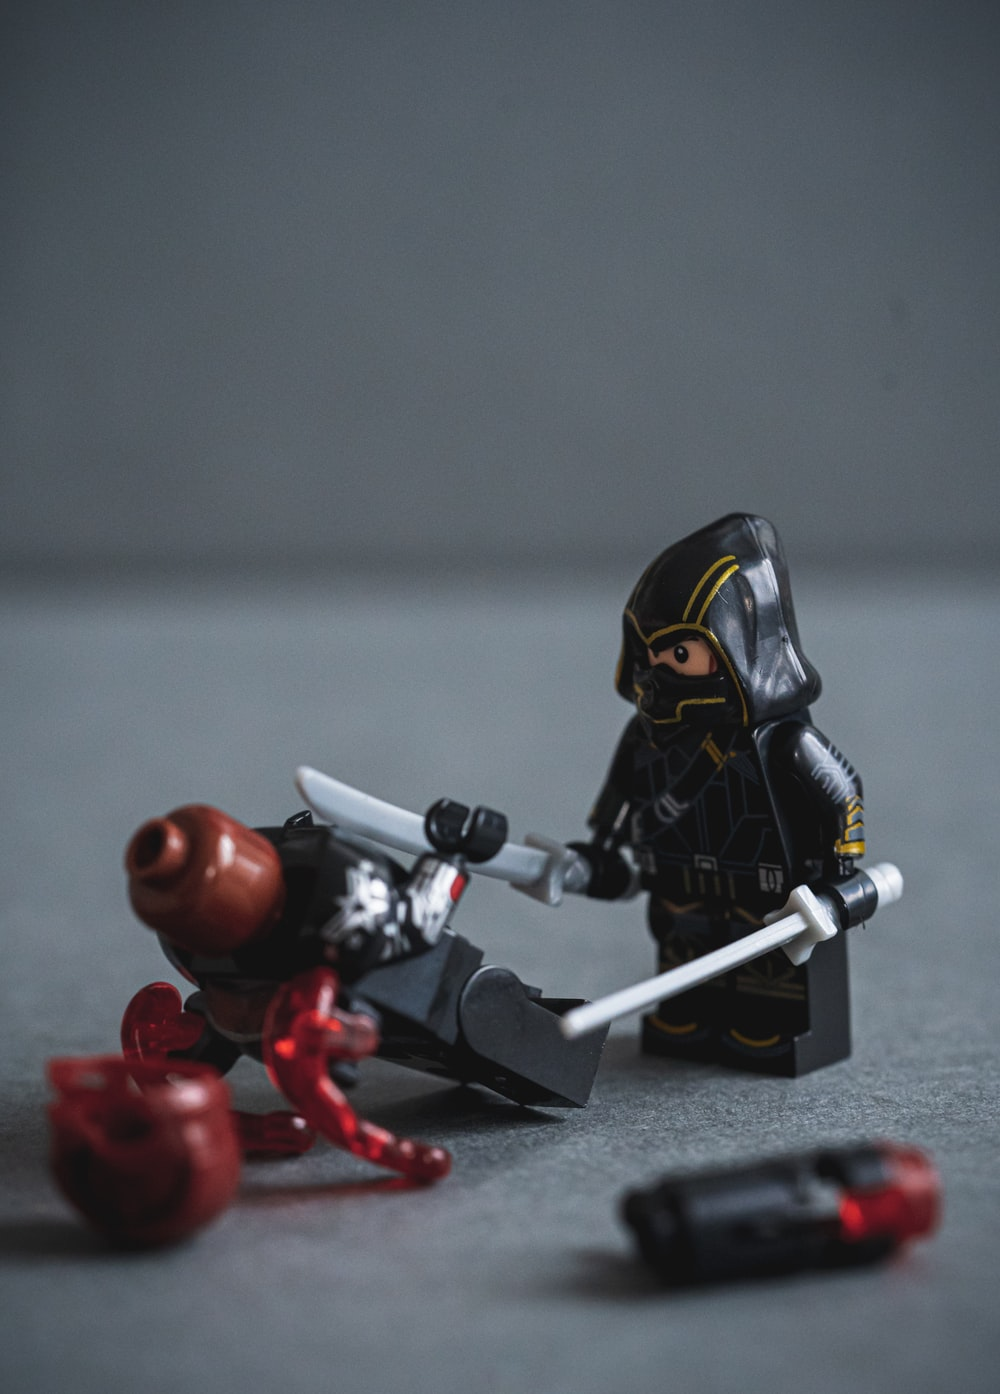 black and red robot toy